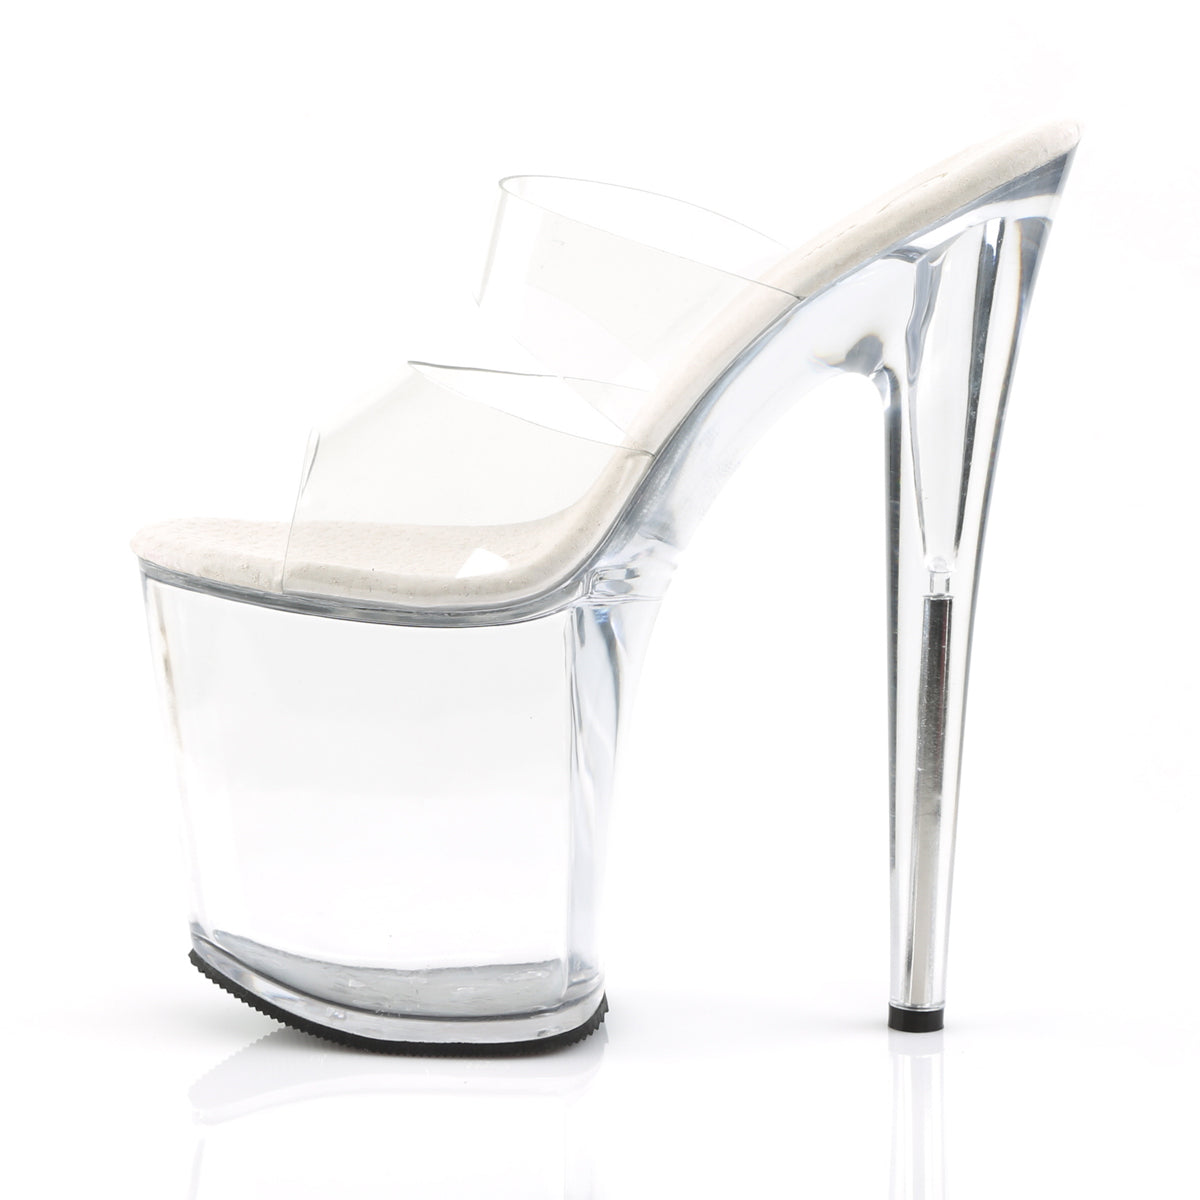 6435072bb65 FLAMINGO-802 Pleaser Sexy Shoes 8 Inch Heel Two Band Platform Slide ...